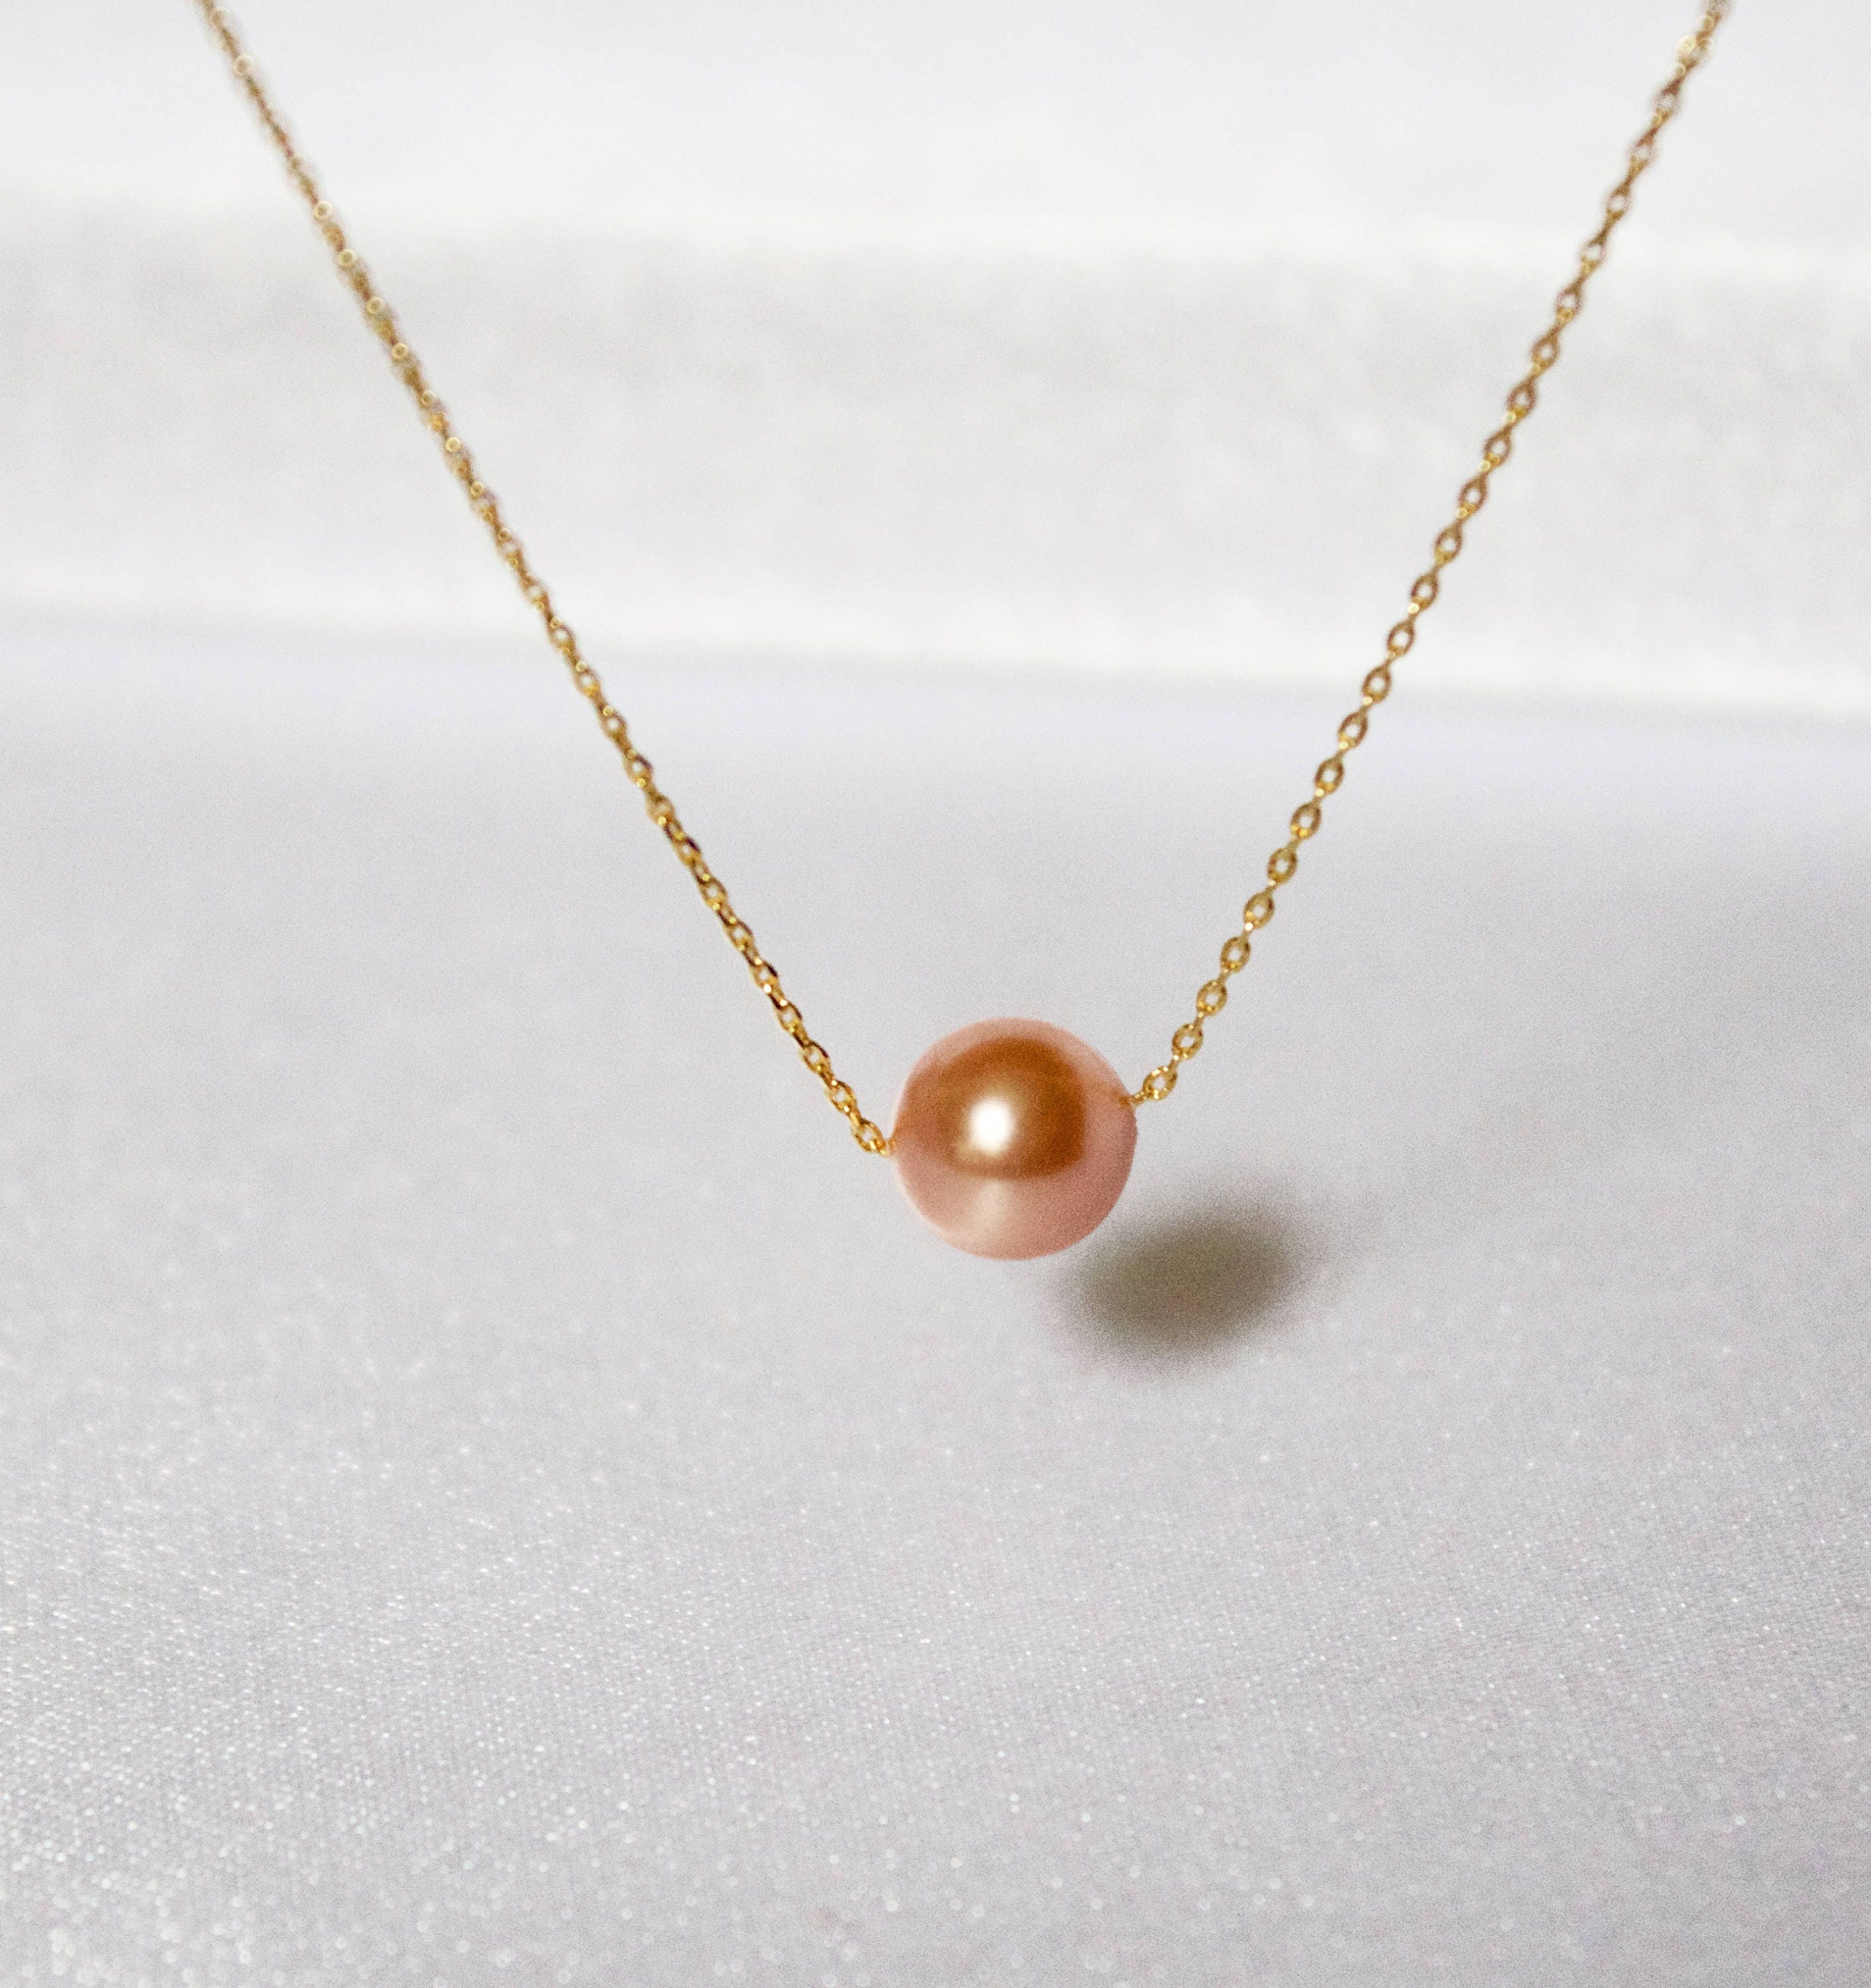 Peach Pearl Necklace: Gold Peach Single Pearl Necklace//Floating Pearl